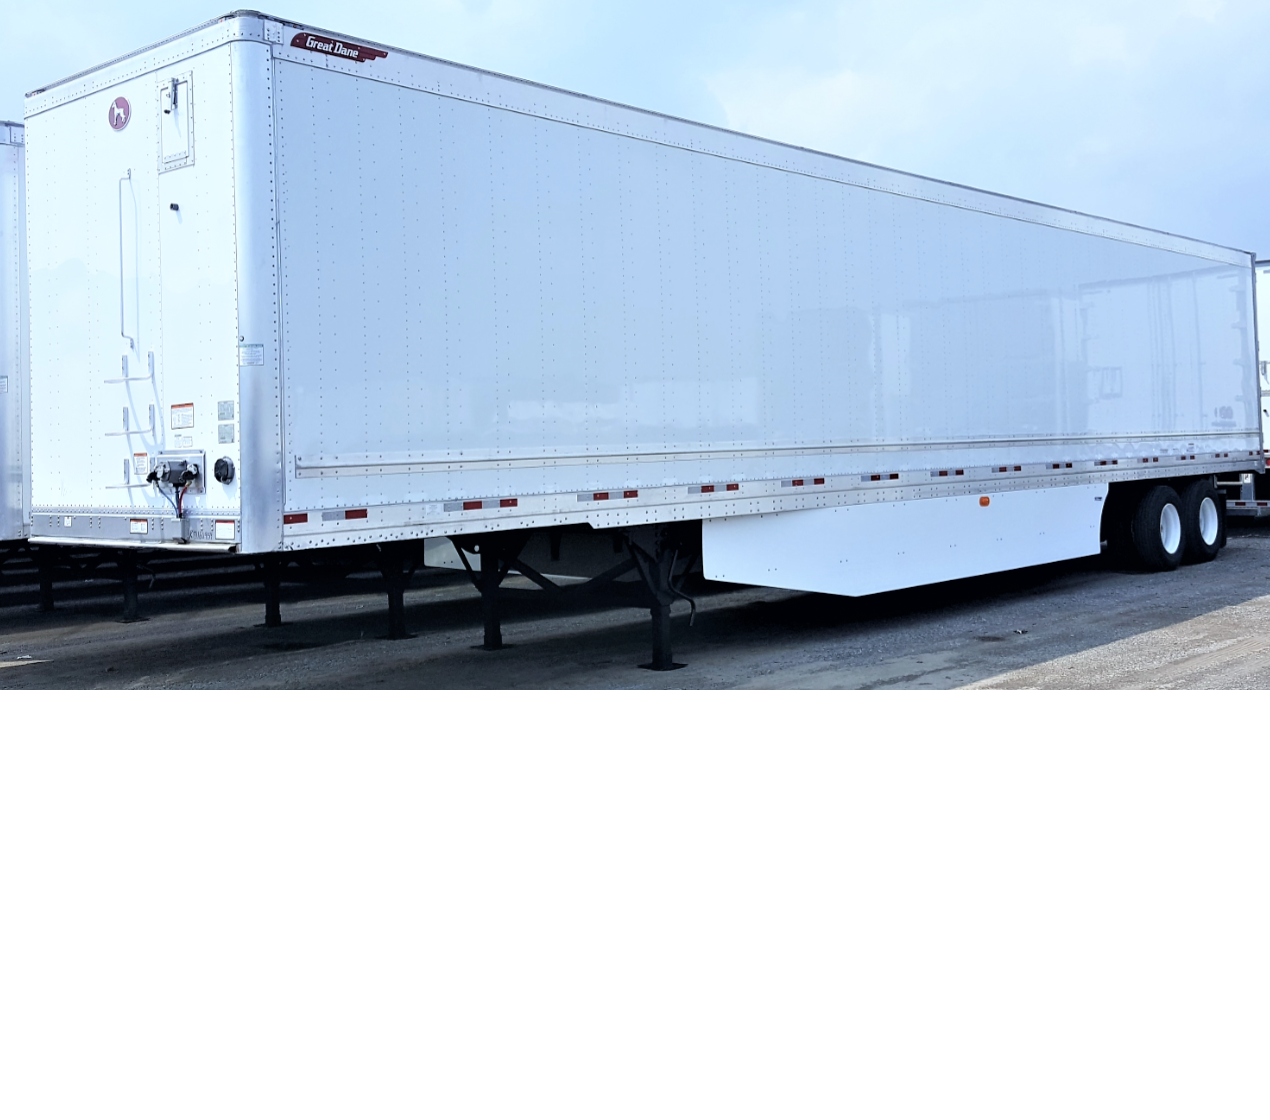 "2020 Great Dane Champion CS1 Van Trailers with 16"" Logistic Post Centers"